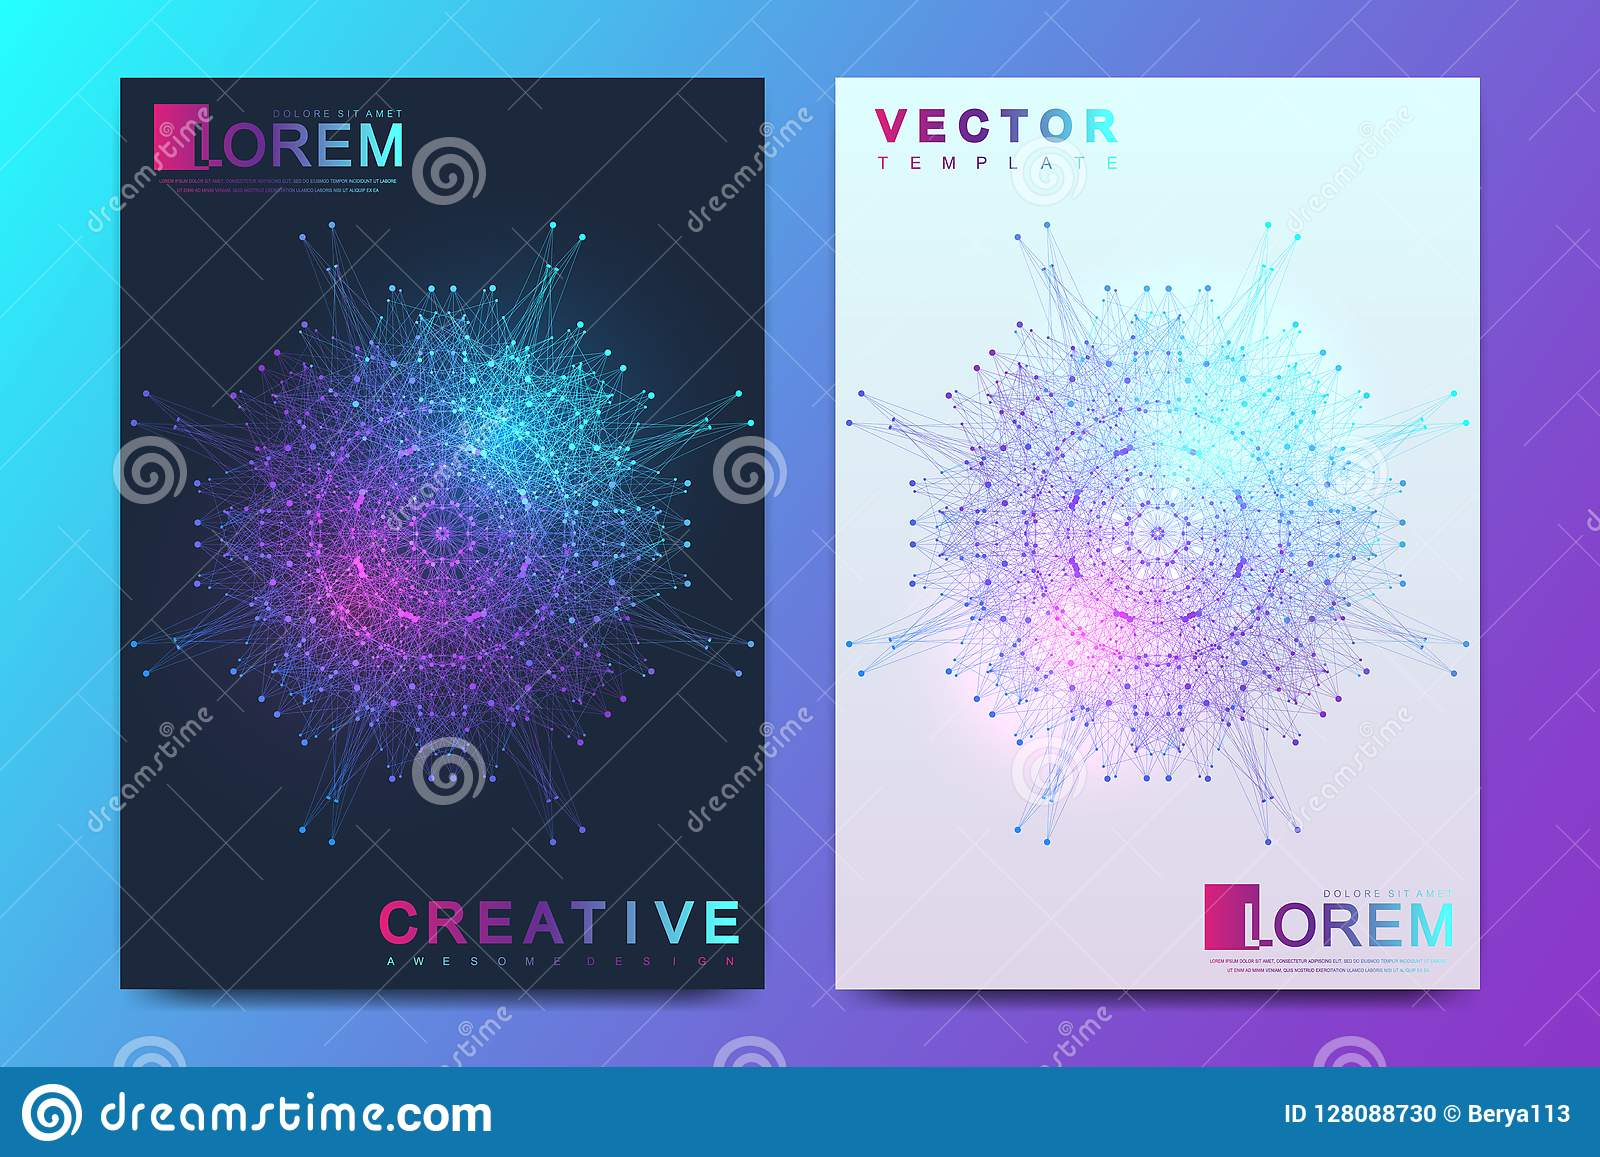 Modern vector template for brochure, leaflet, flyer, cover, banner, catalog, magazine, or annual report in A4 size